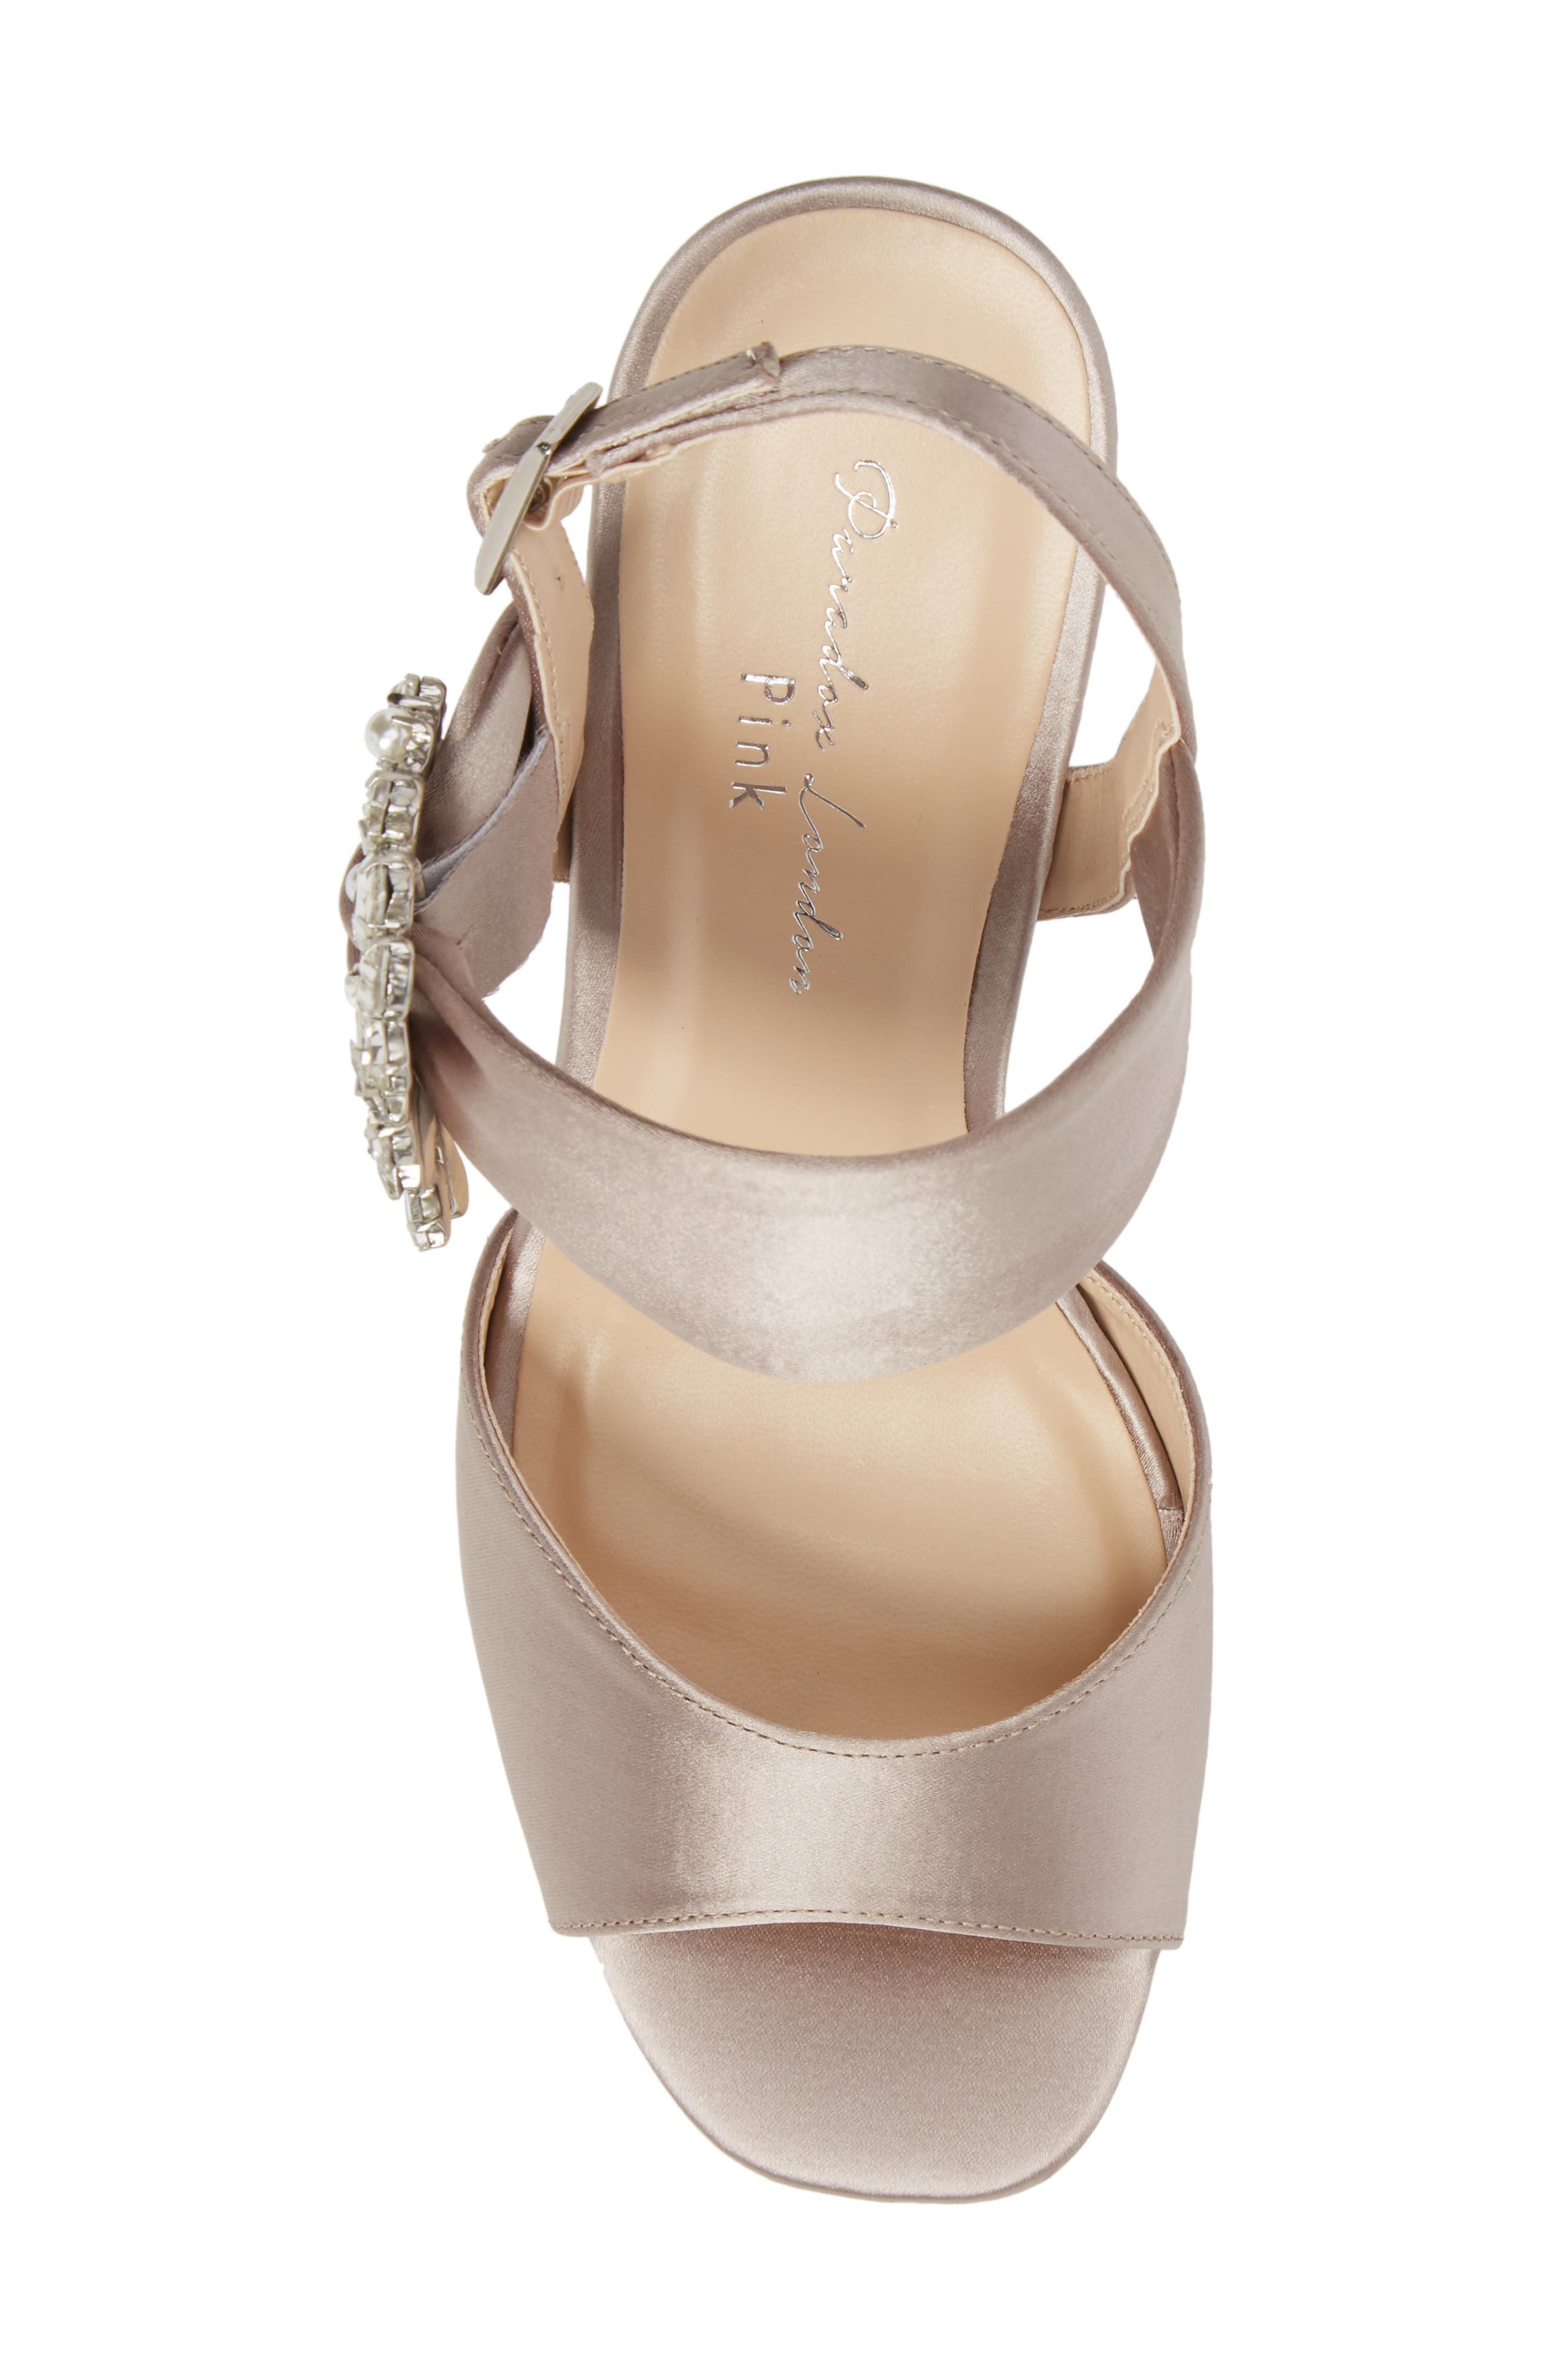 Manhattan Embellished Sandal,                             Alternate thumbnail 5, color,                             TAUPE SATIN